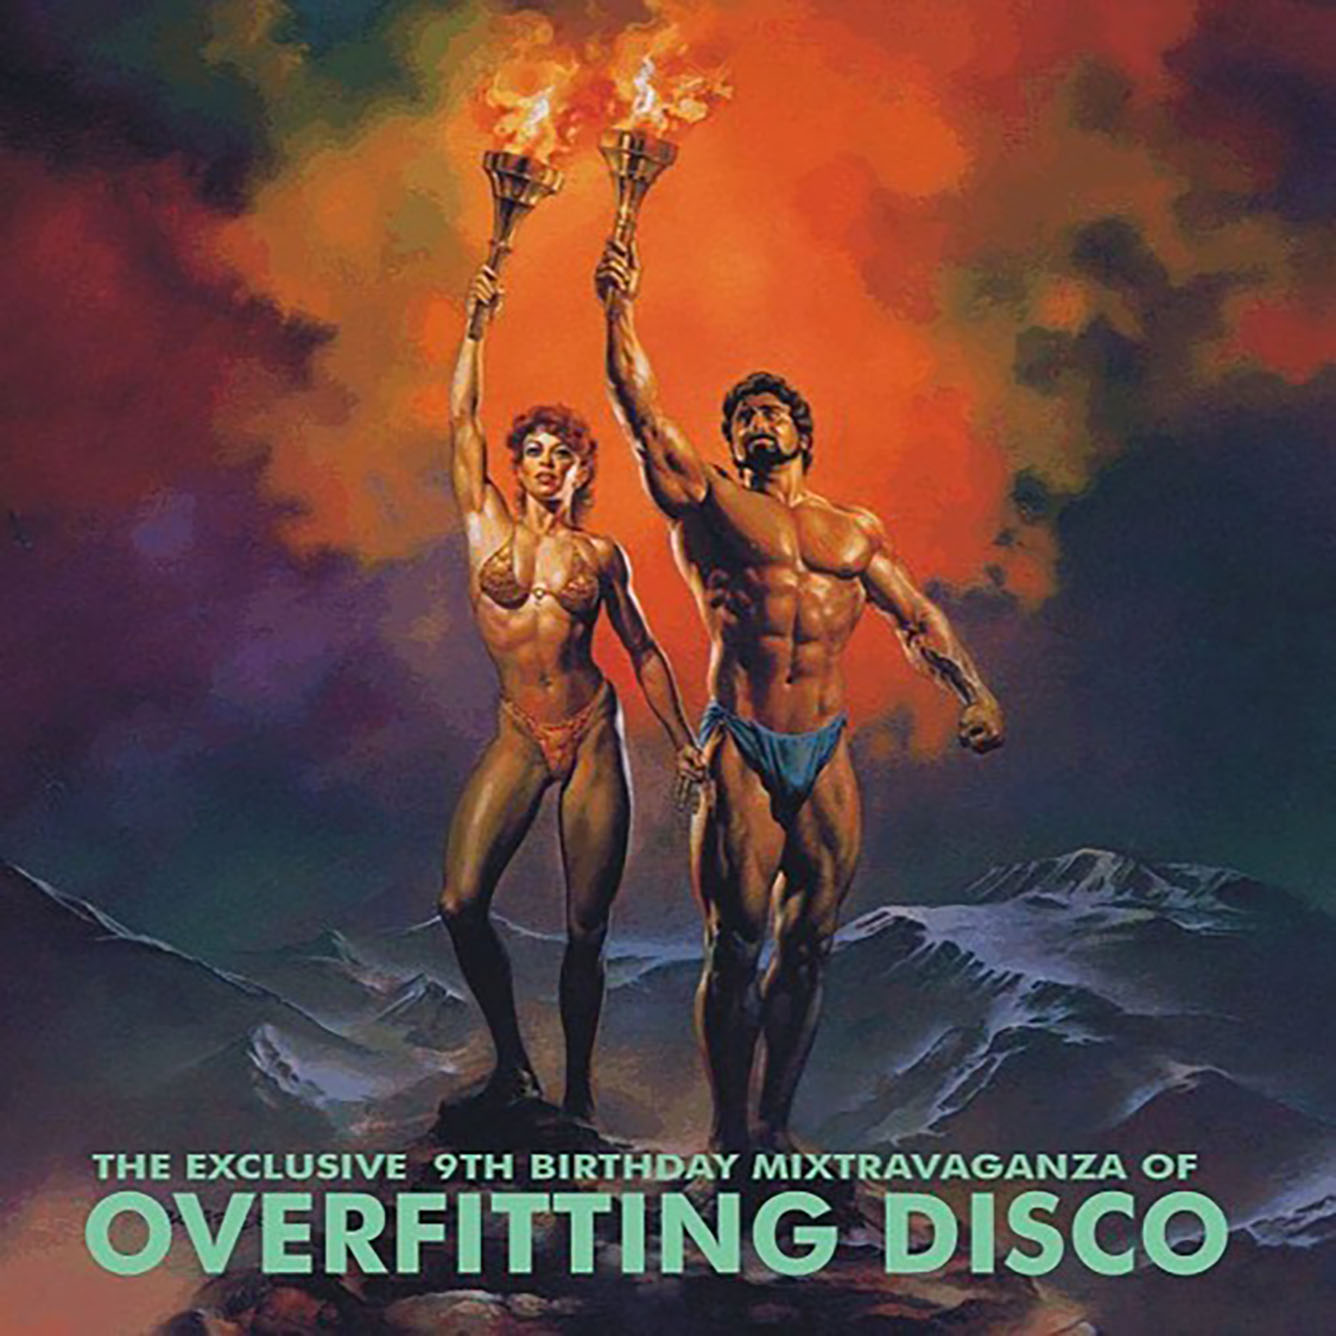 Behind the Amusement Park – Overfitting Disco